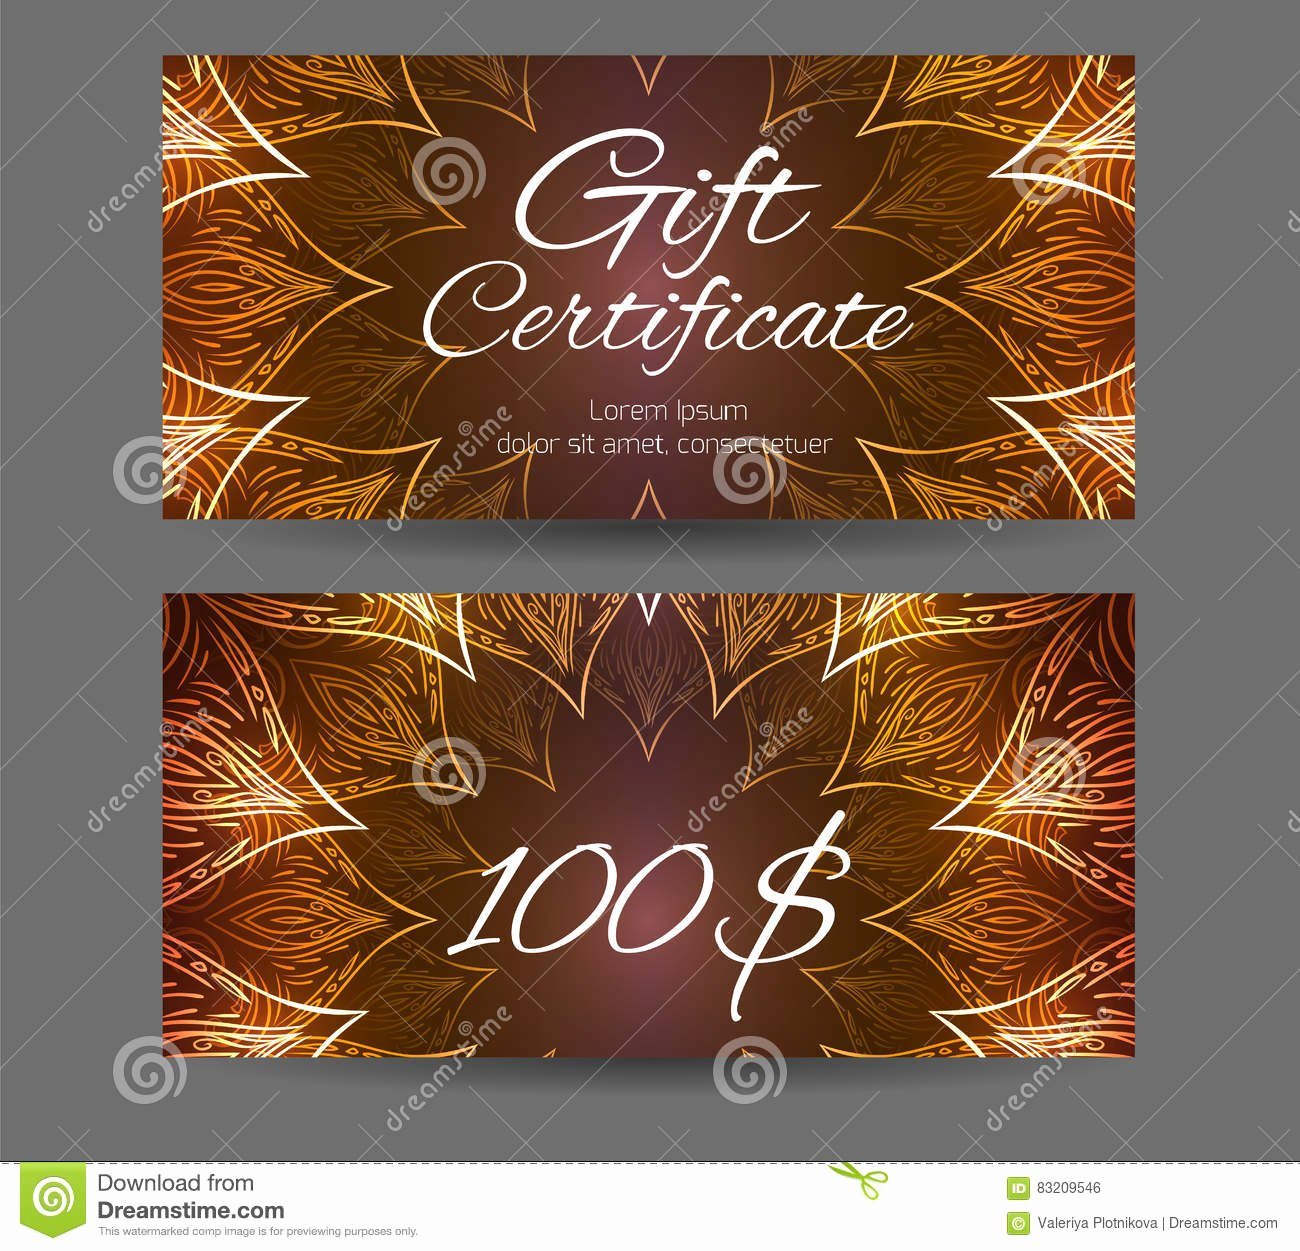 Yoga Gift Certificate Template Free Luxury Template Gift Certificate for Yoga Studio Spa Center